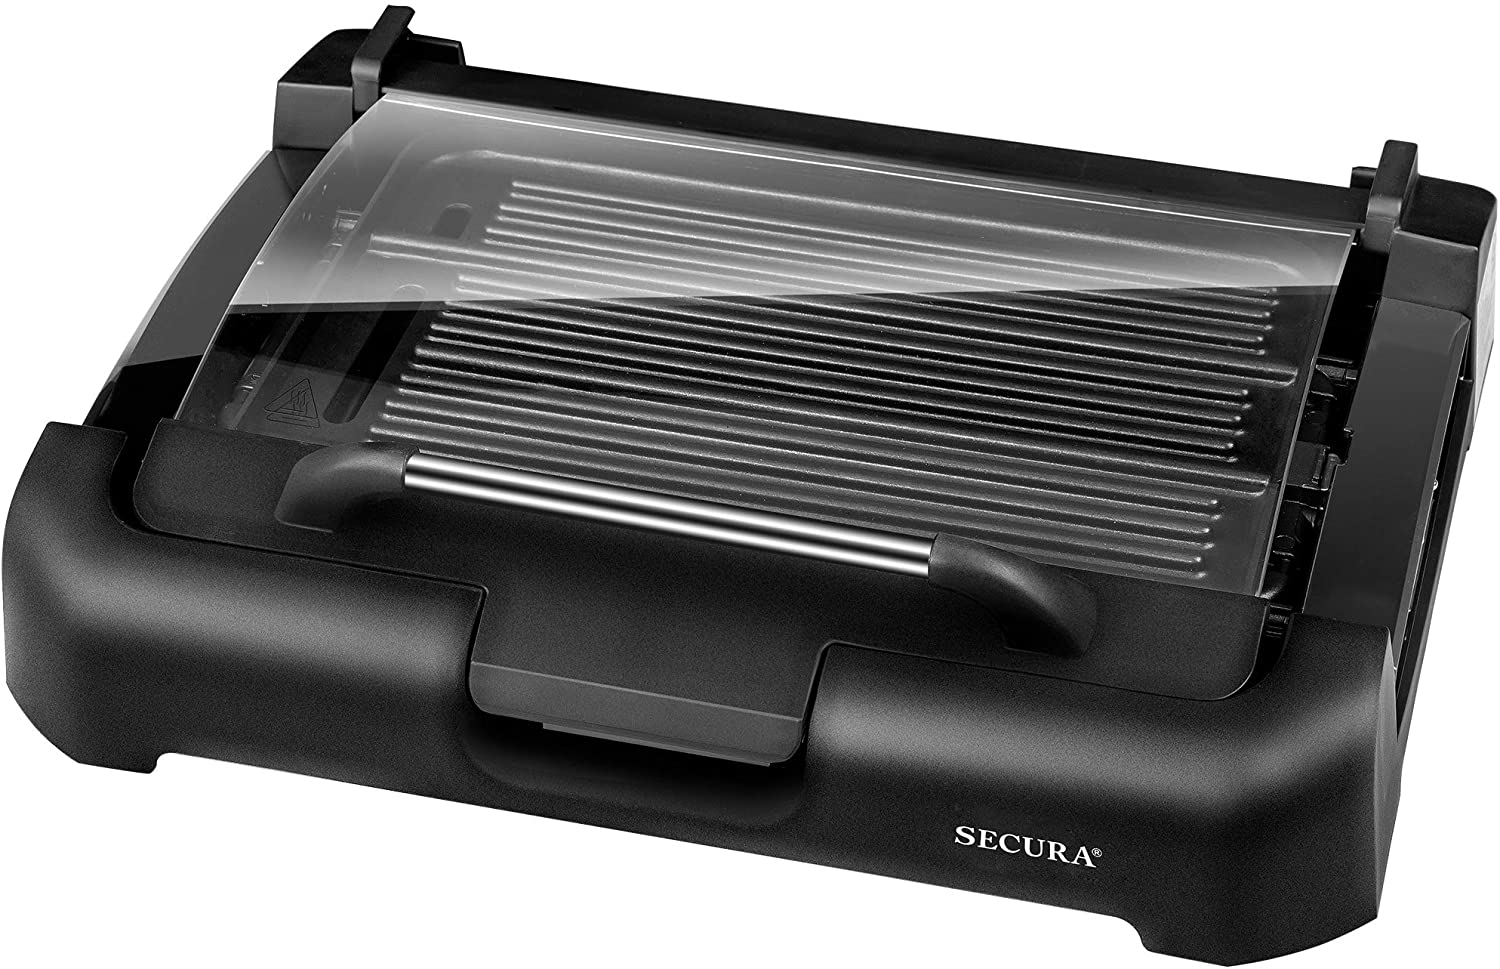 Secura Indoor Smokeless Grill - Most High Powered Indoor Grill